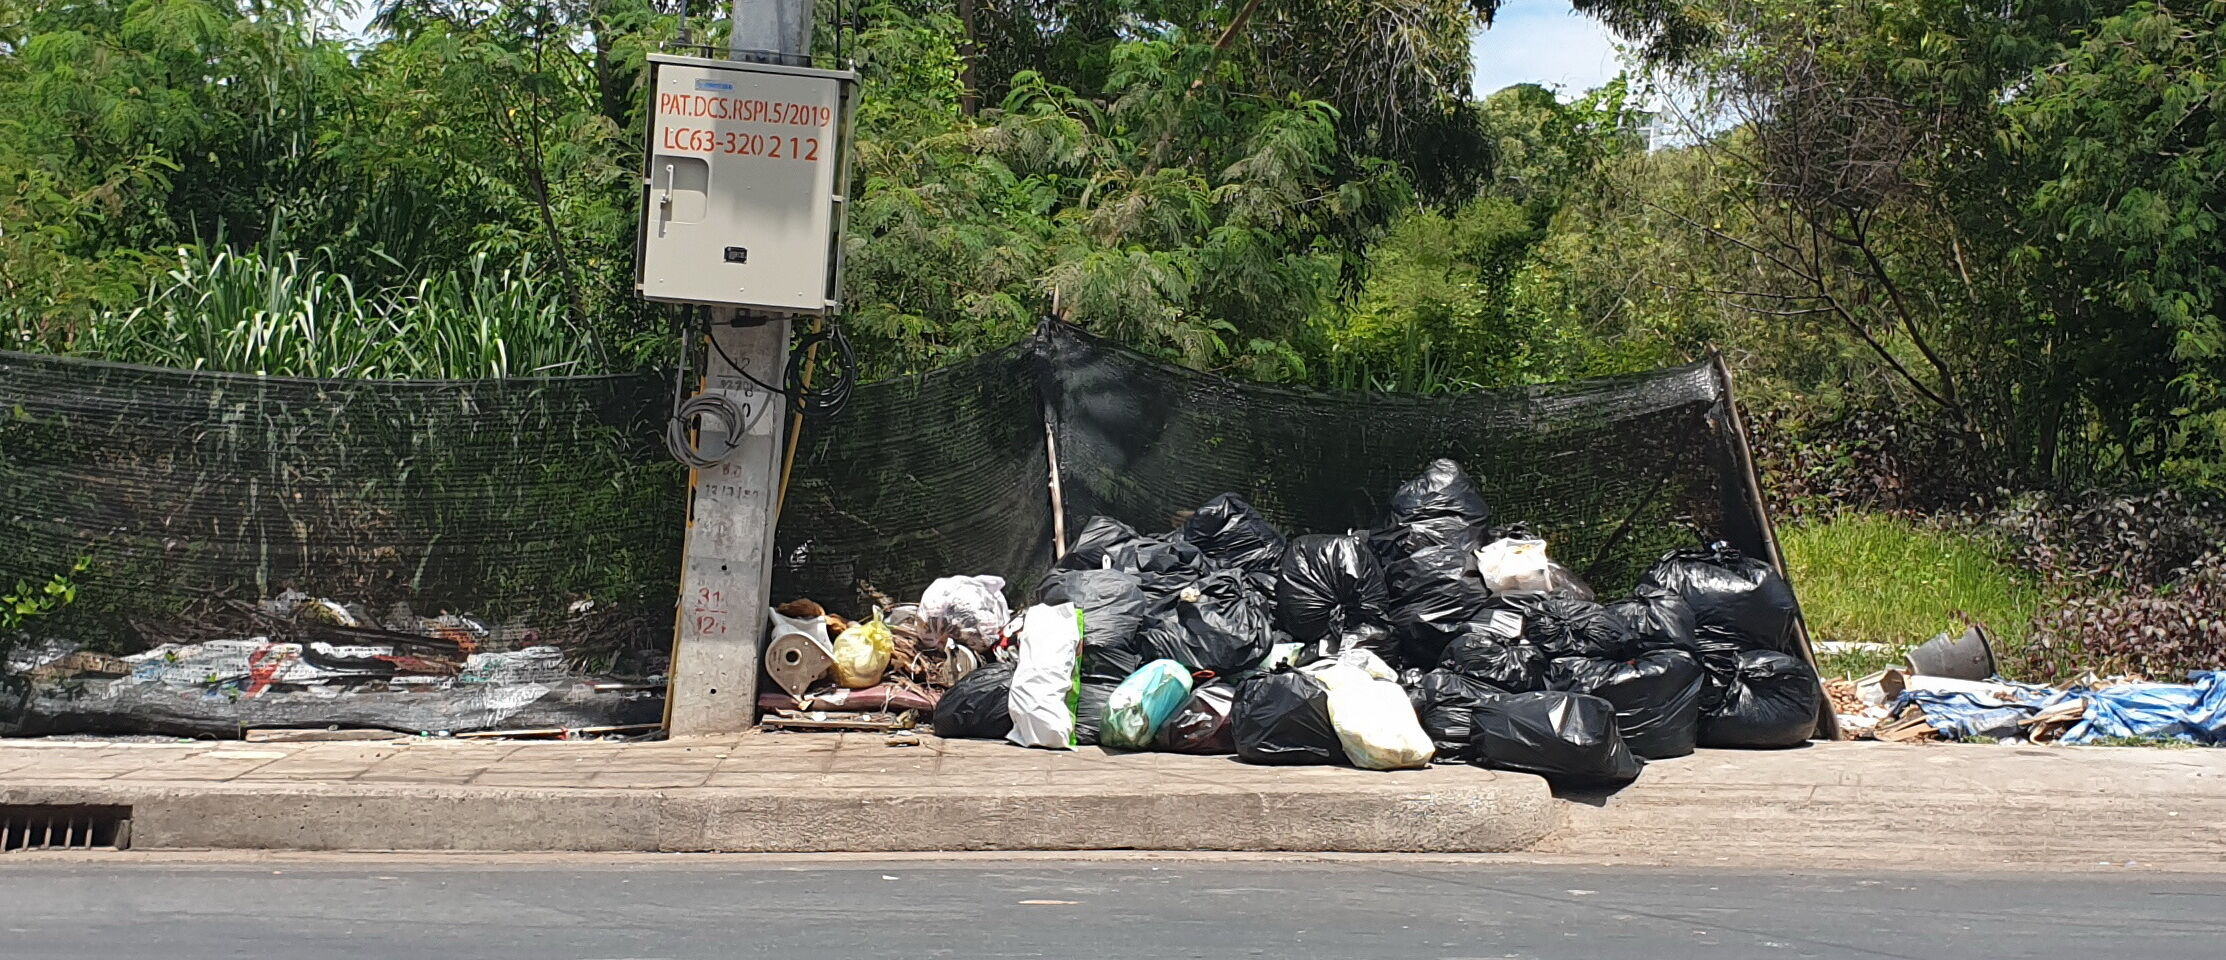 Island of rubbish: Koh Samui's pollution problem remains unsolved | News by Thaiger